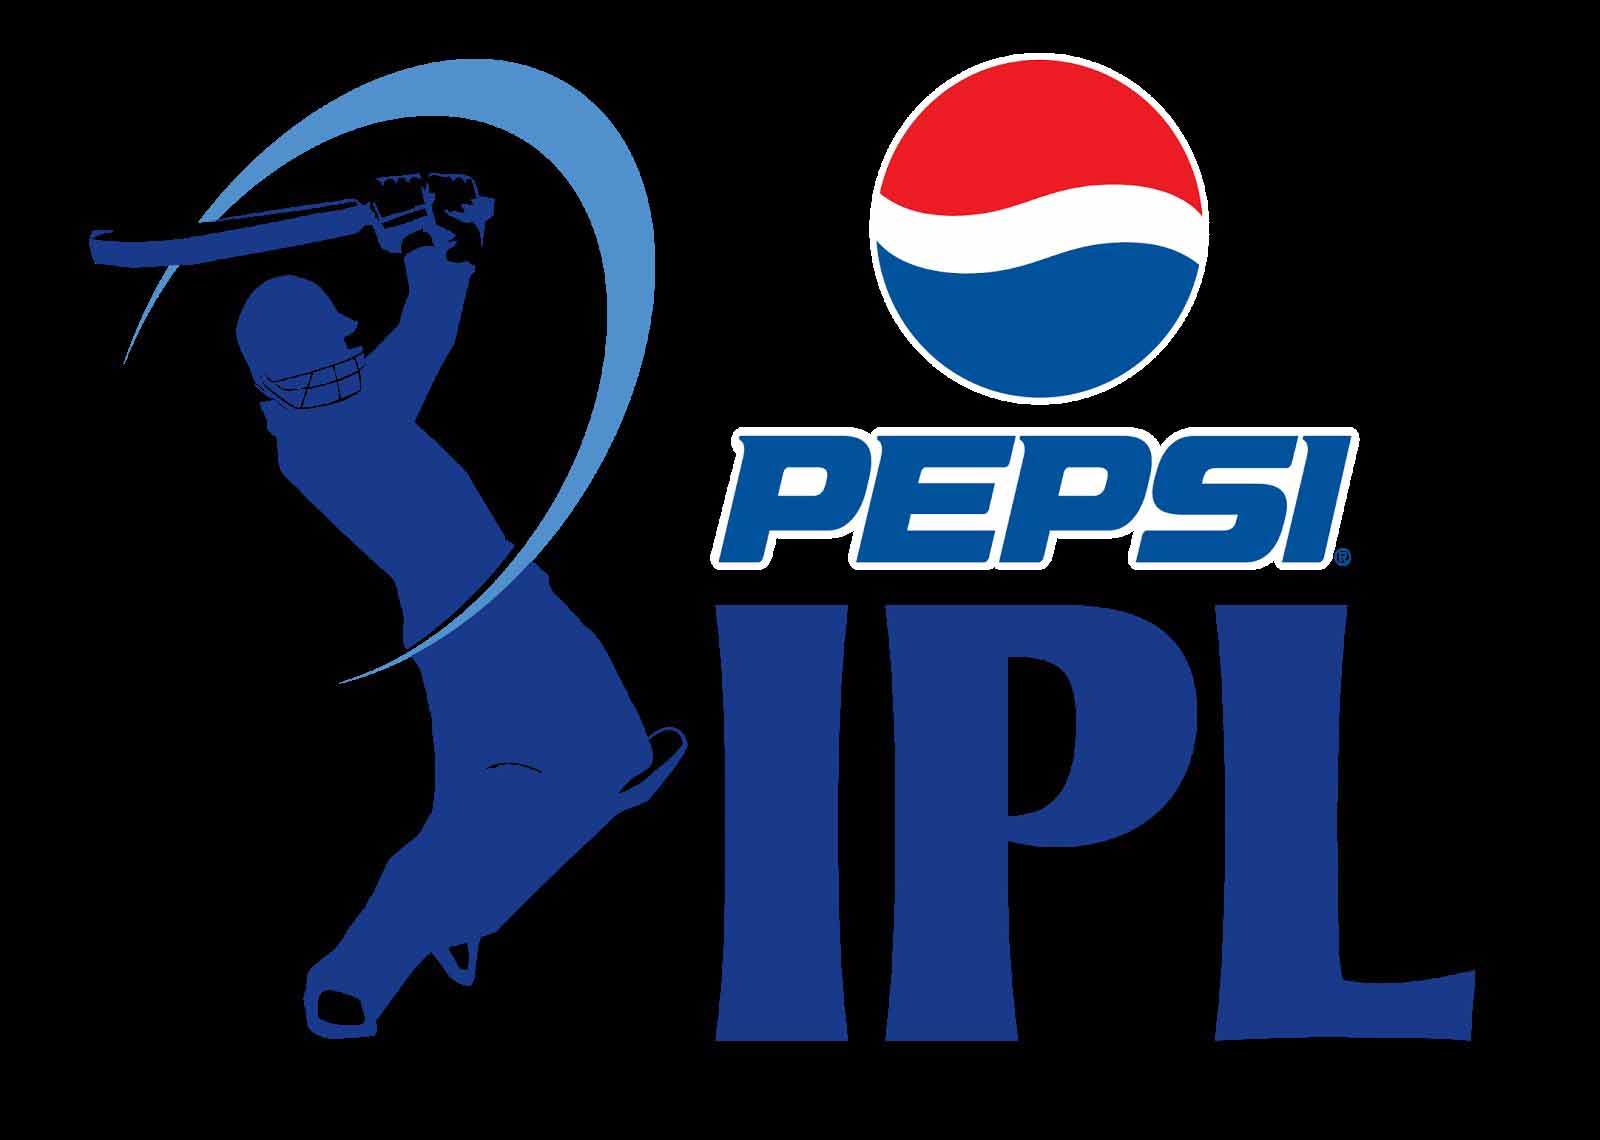 ipl wallpaper 640x1136 - photo #8